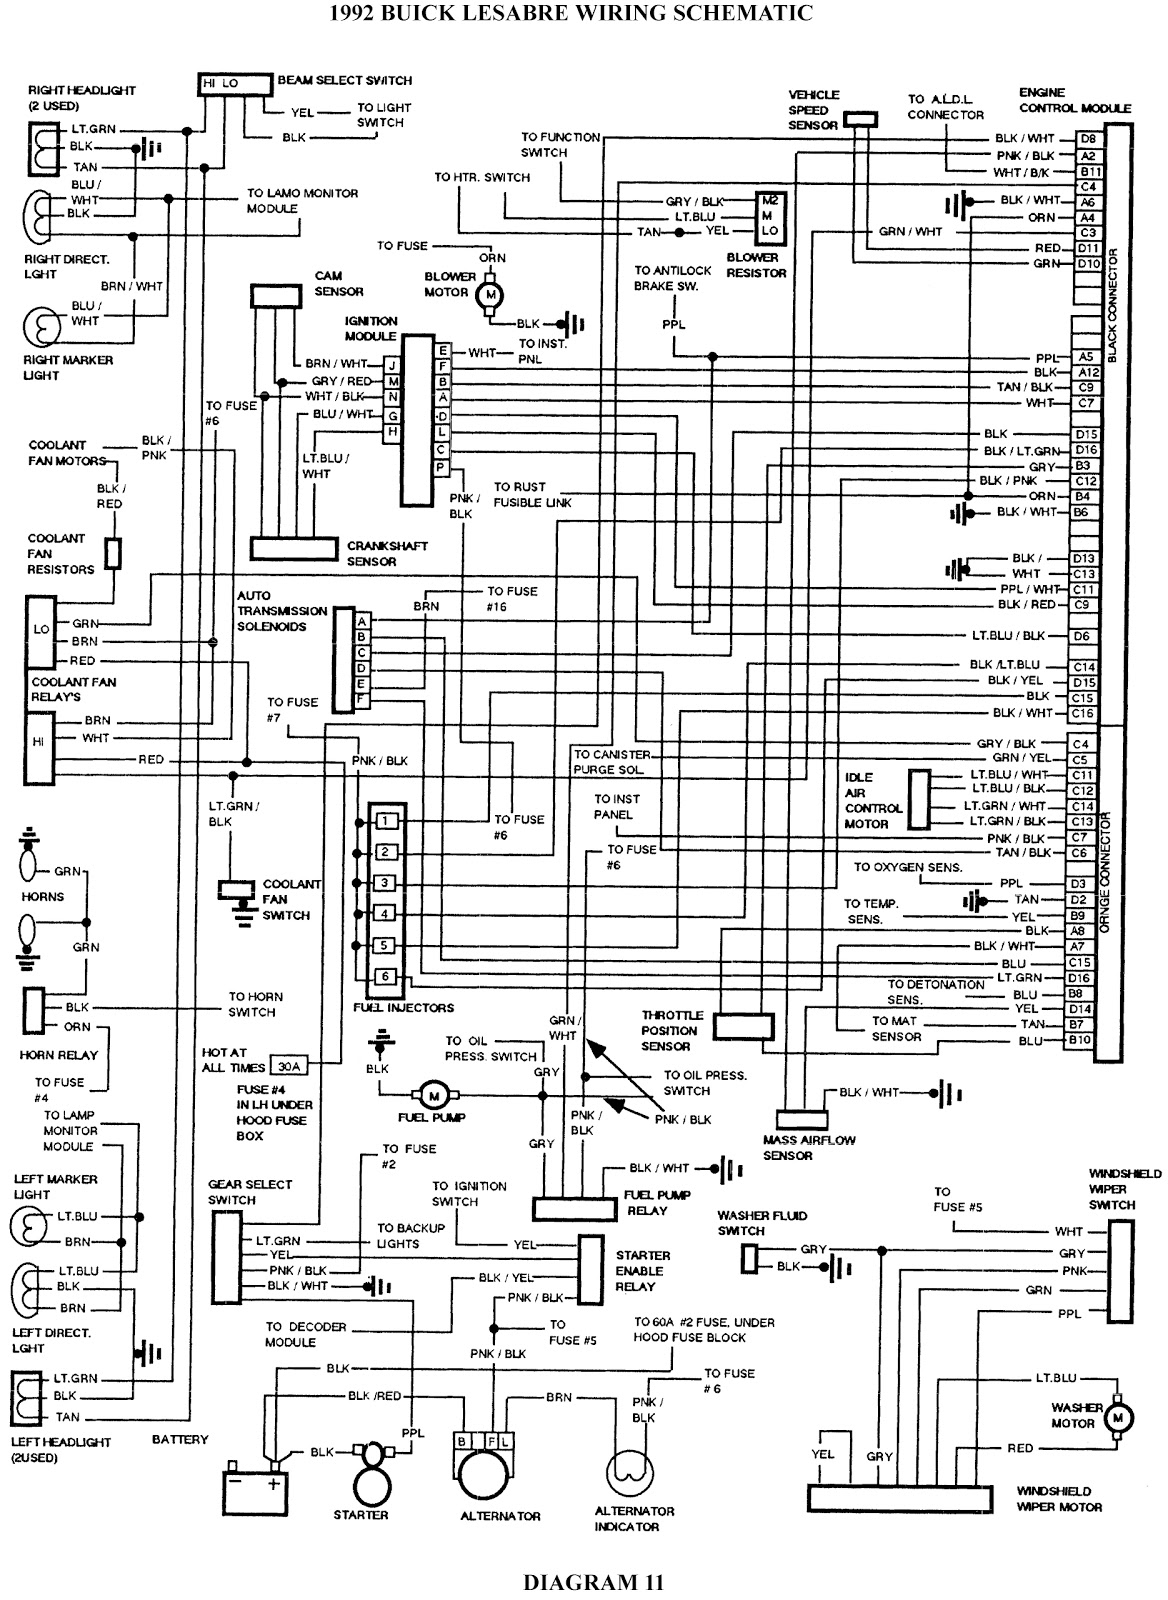 1991 jeep cherokee 4x4 wiring diagram